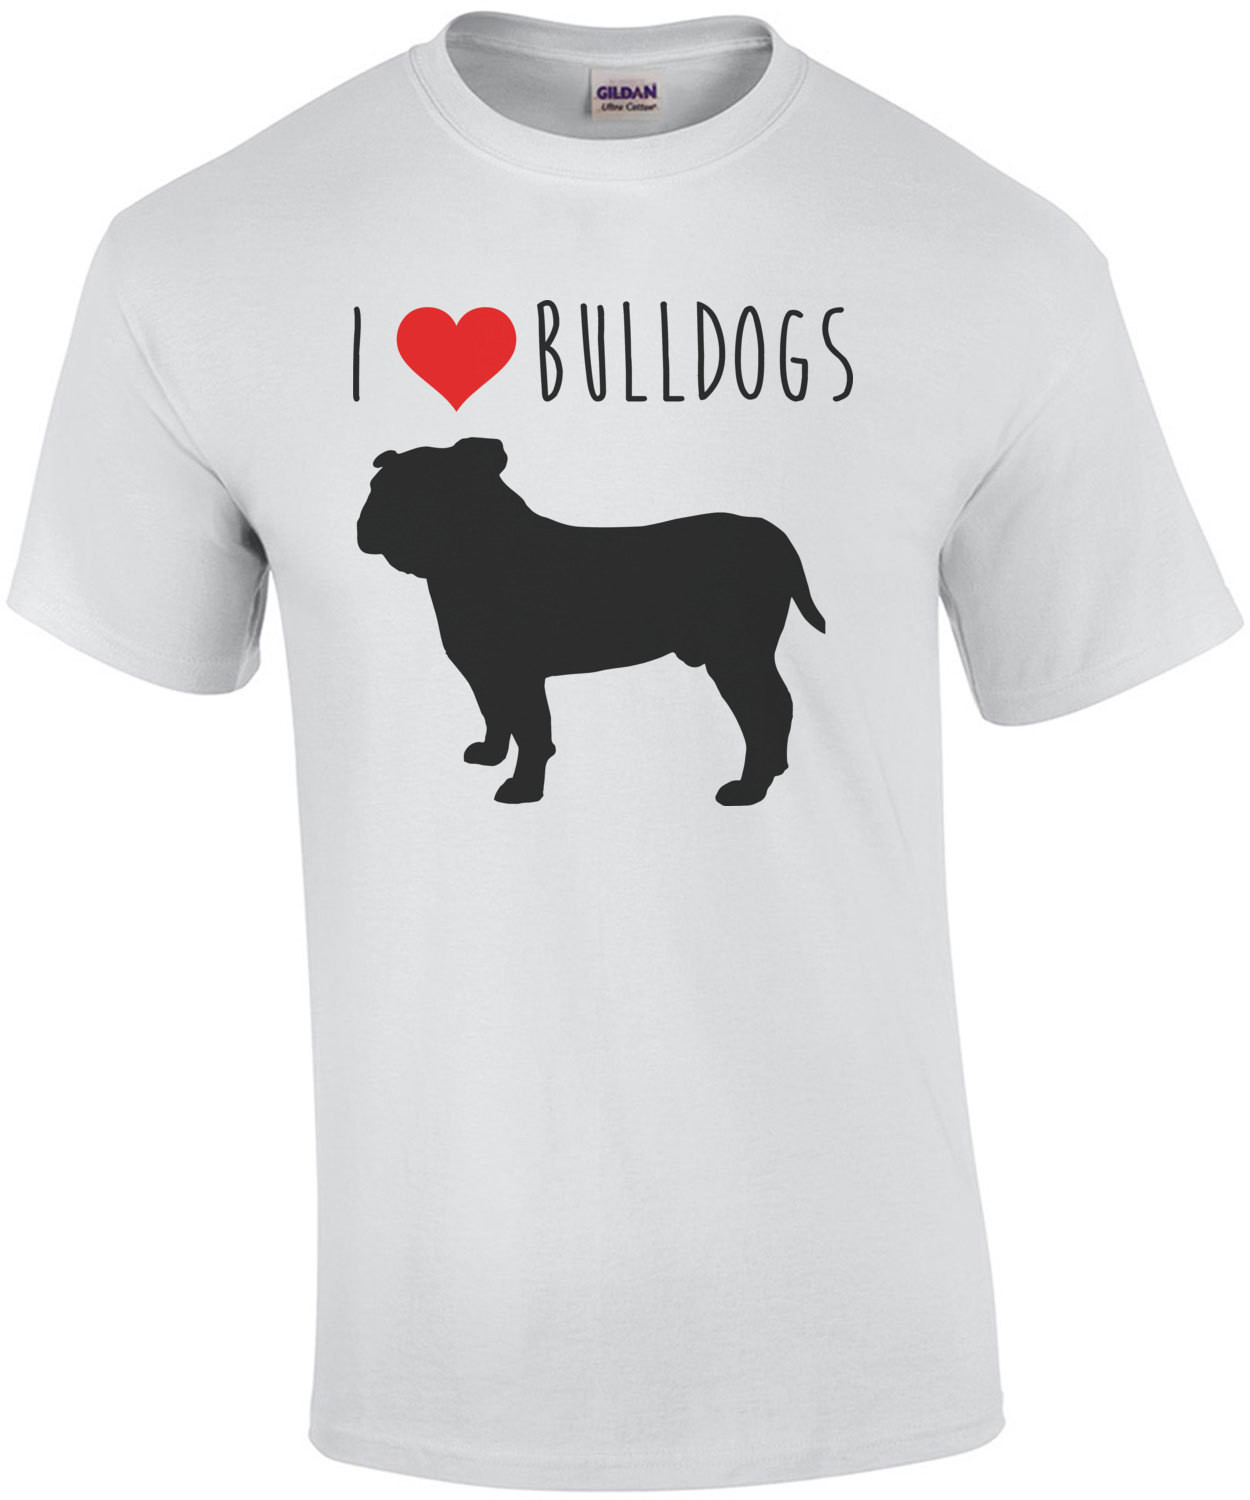 I love bulldogs - bulldog t-shirt